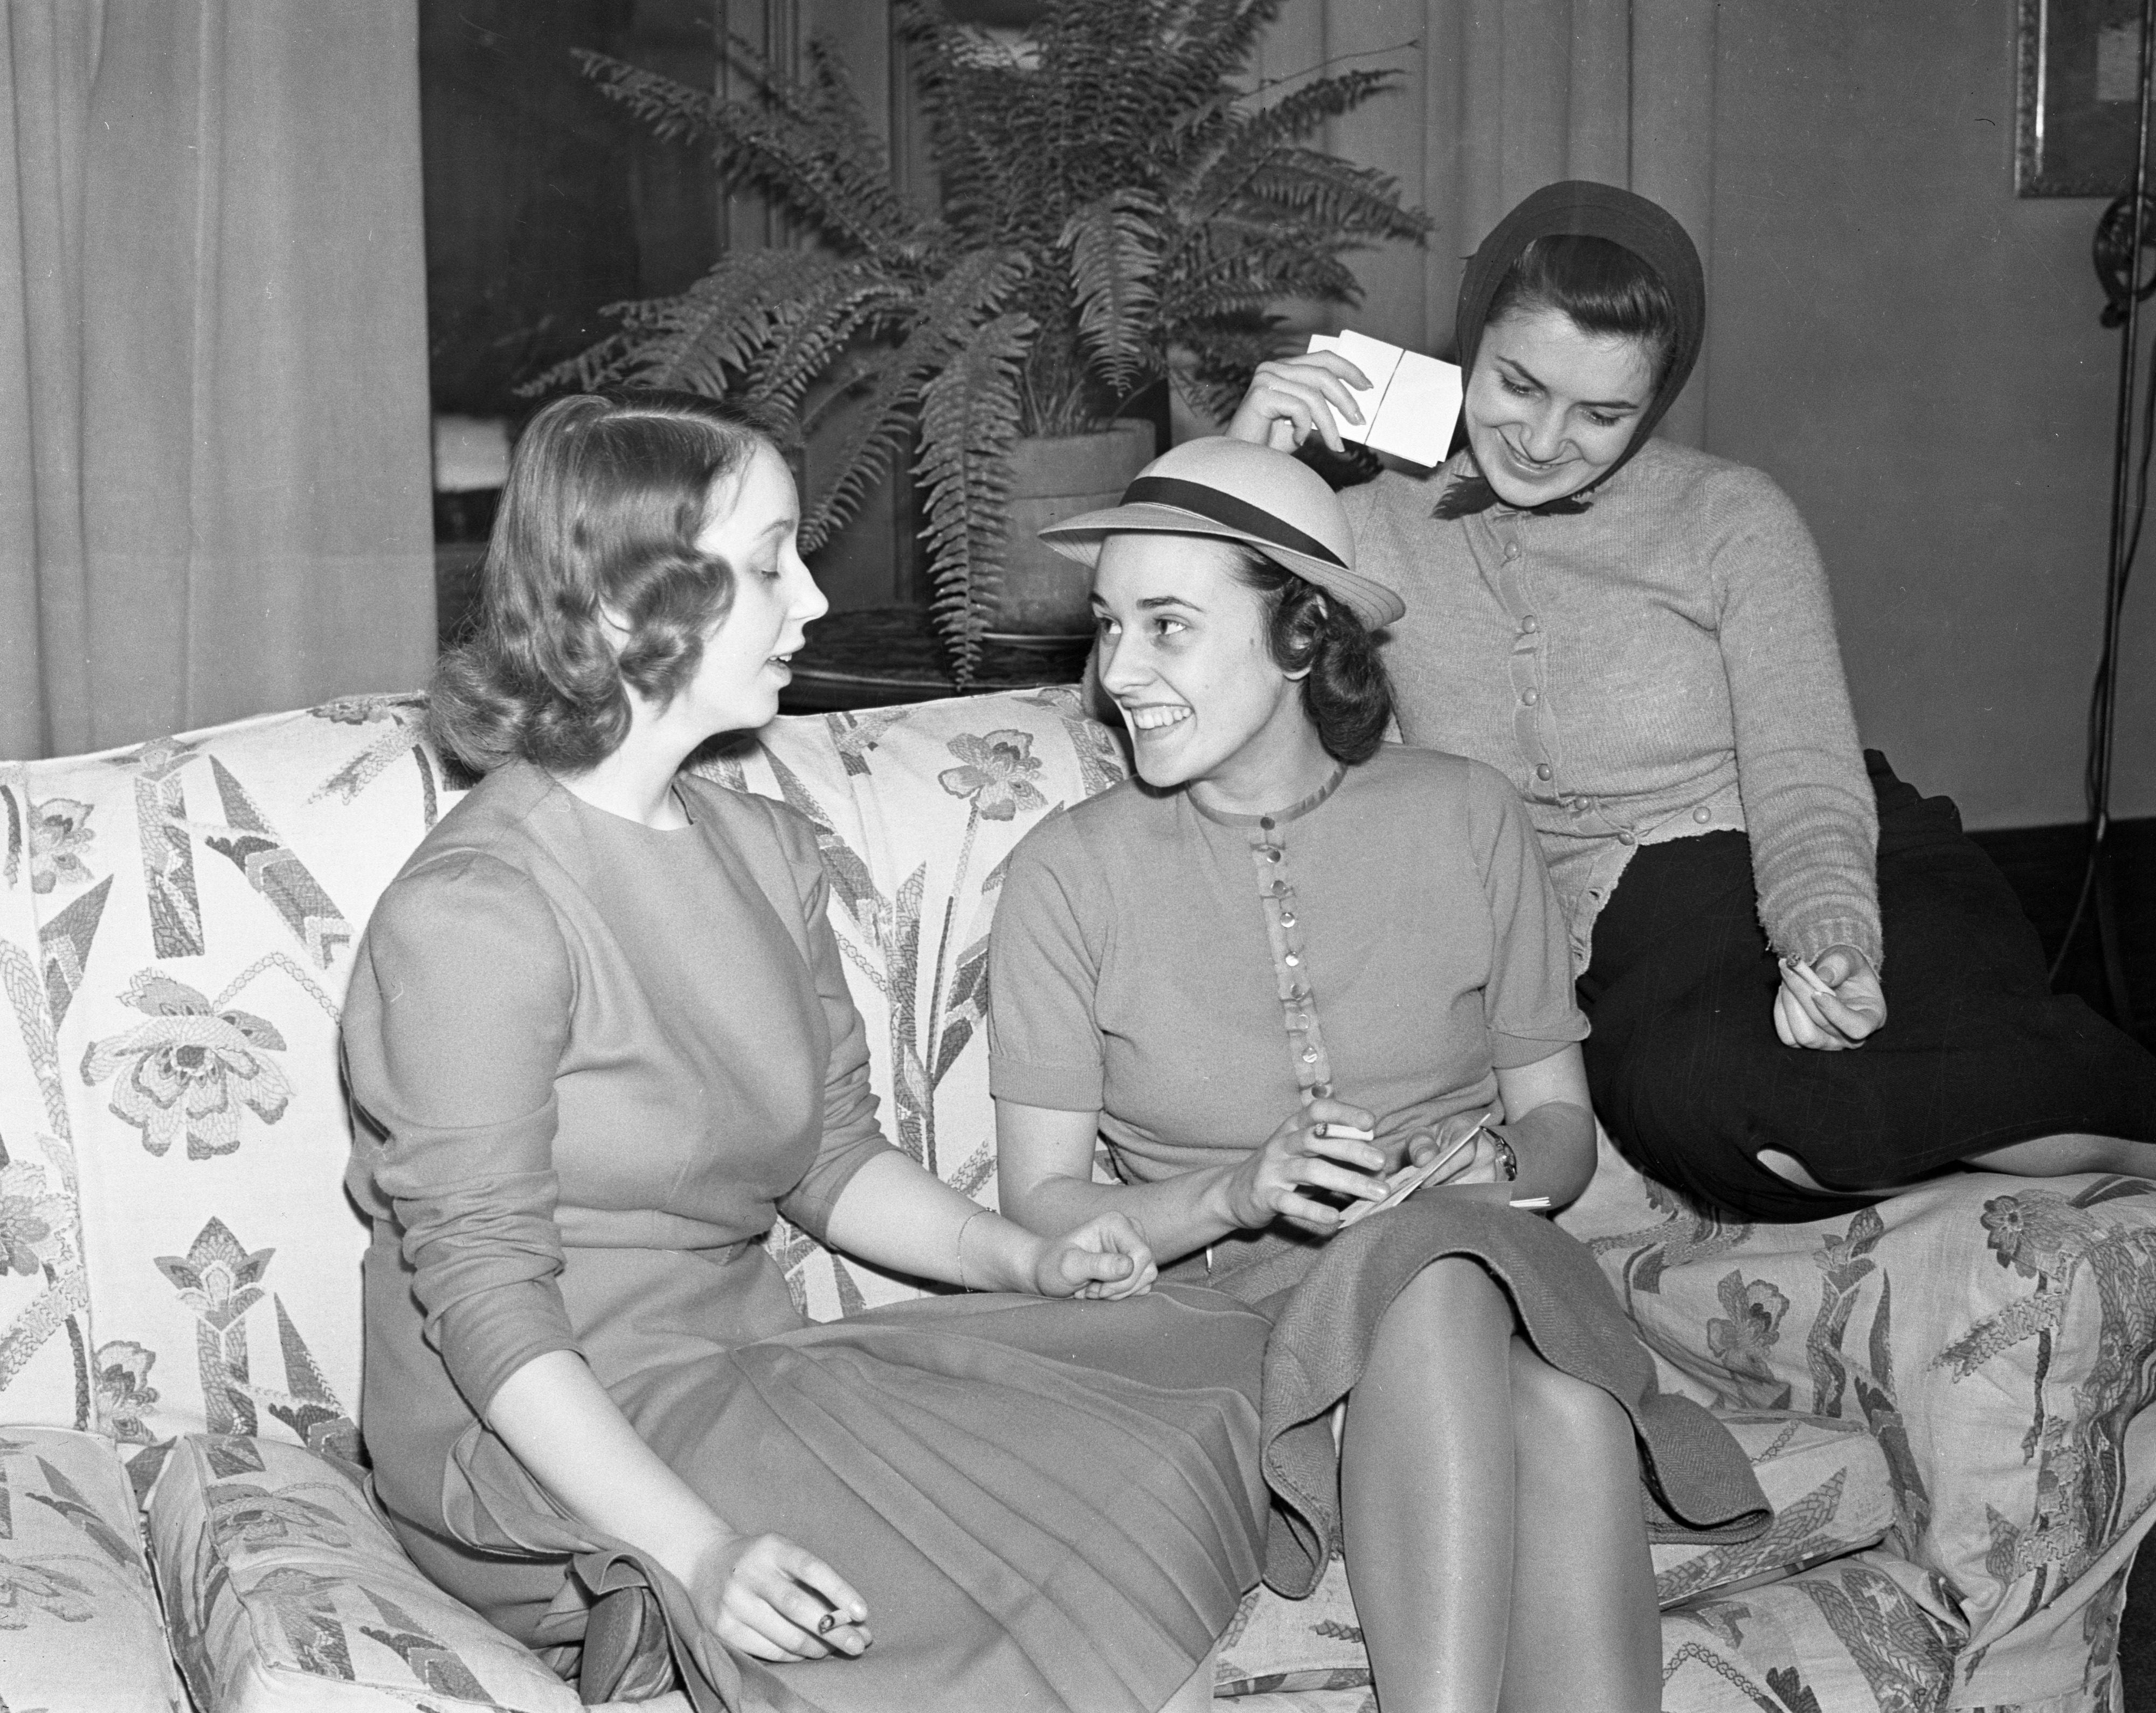 Mary L. Yost, wife of Fielding H. Yost, Jr, with Kappa Kappa Gamma members, 1938 image